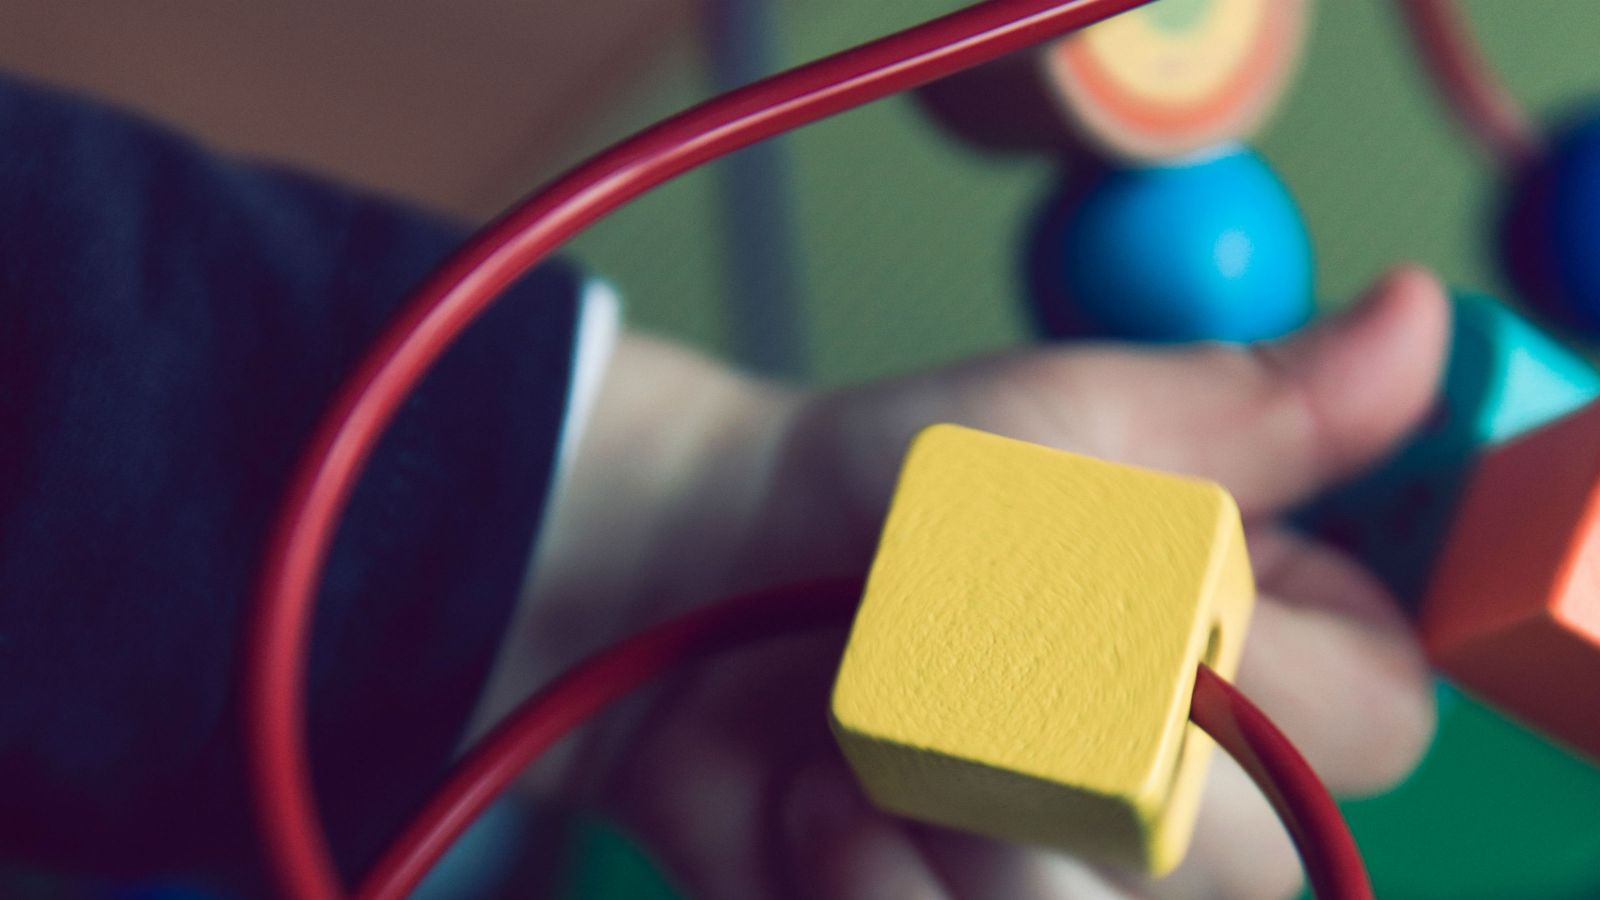 The hand of a small child moves a yellow cube on a read wire.